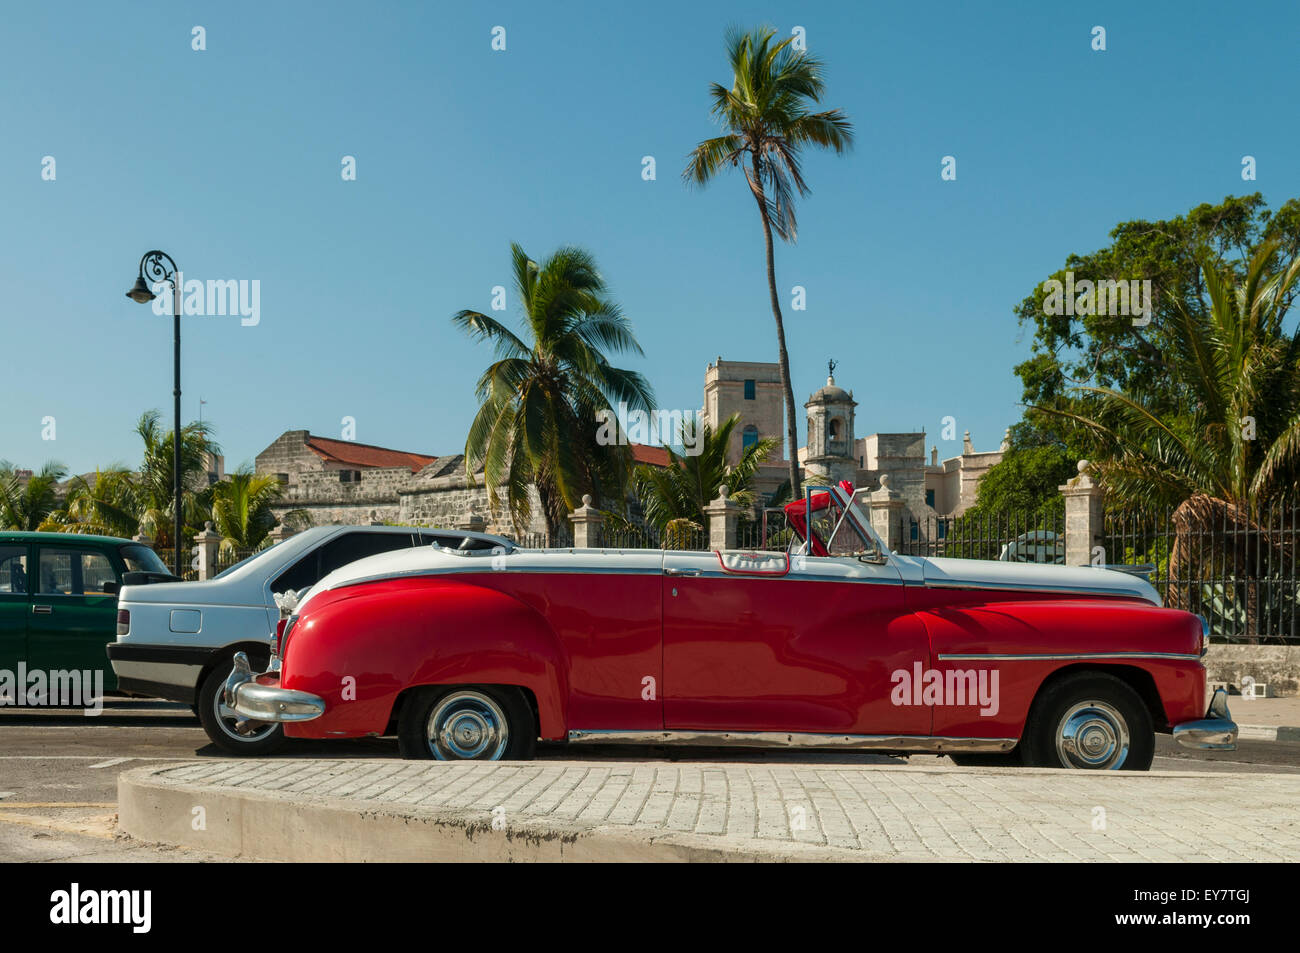 Old Convertible Car, Havana, Cuba Stock Photo: 85610130 - Alamy